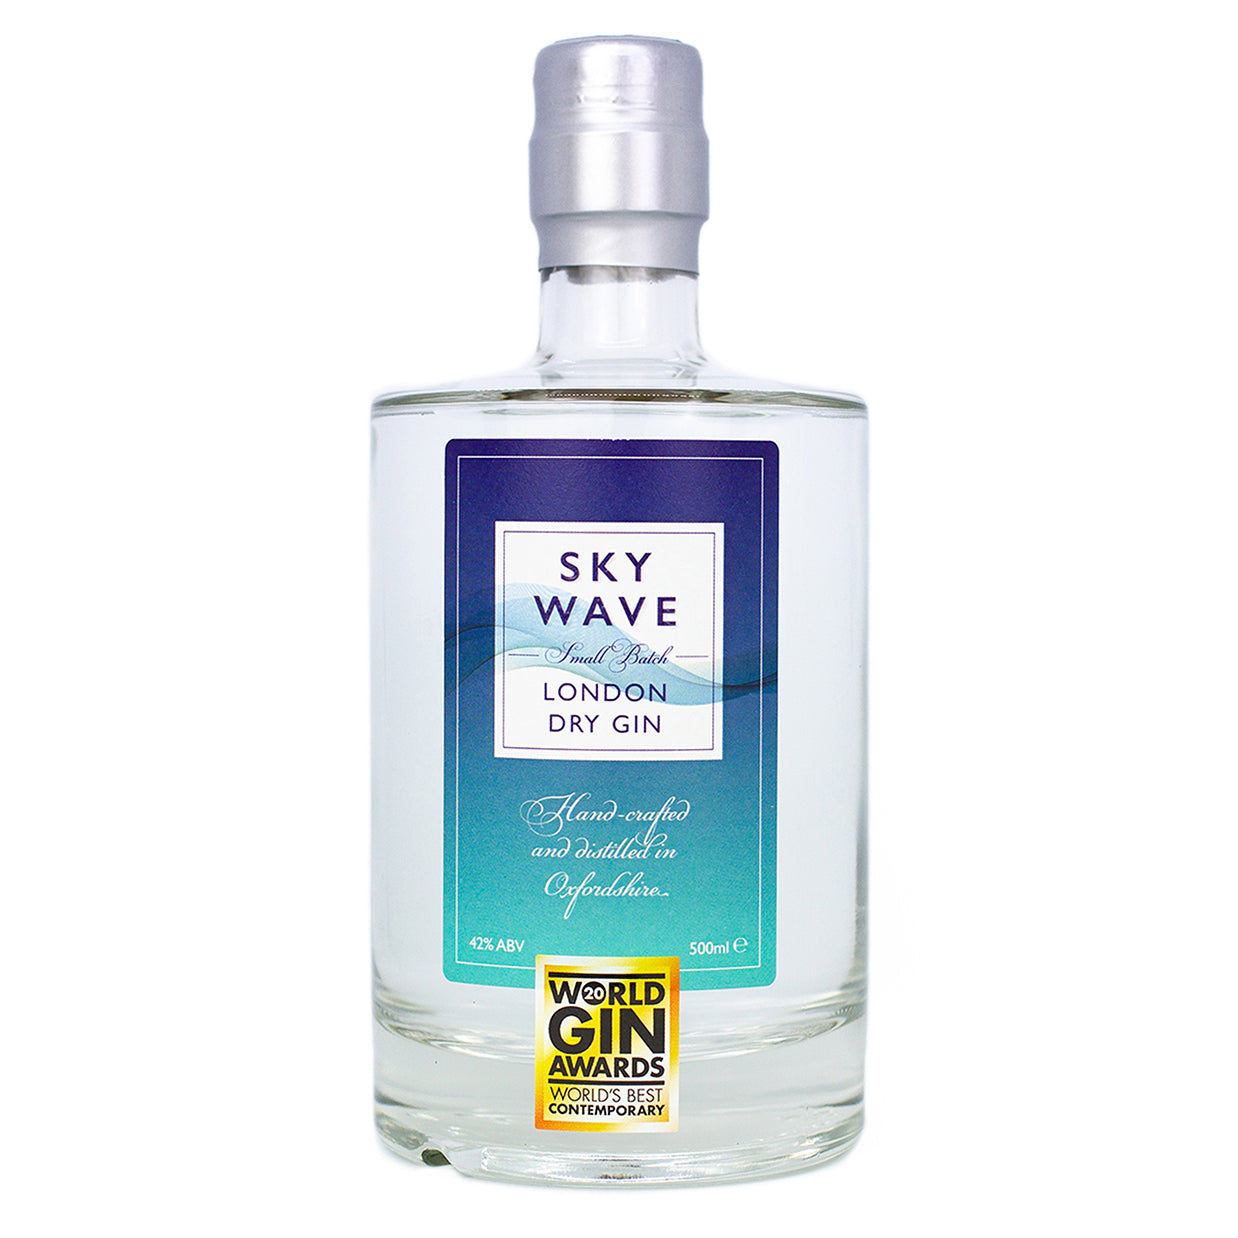 Sky Wave London Dry Gin